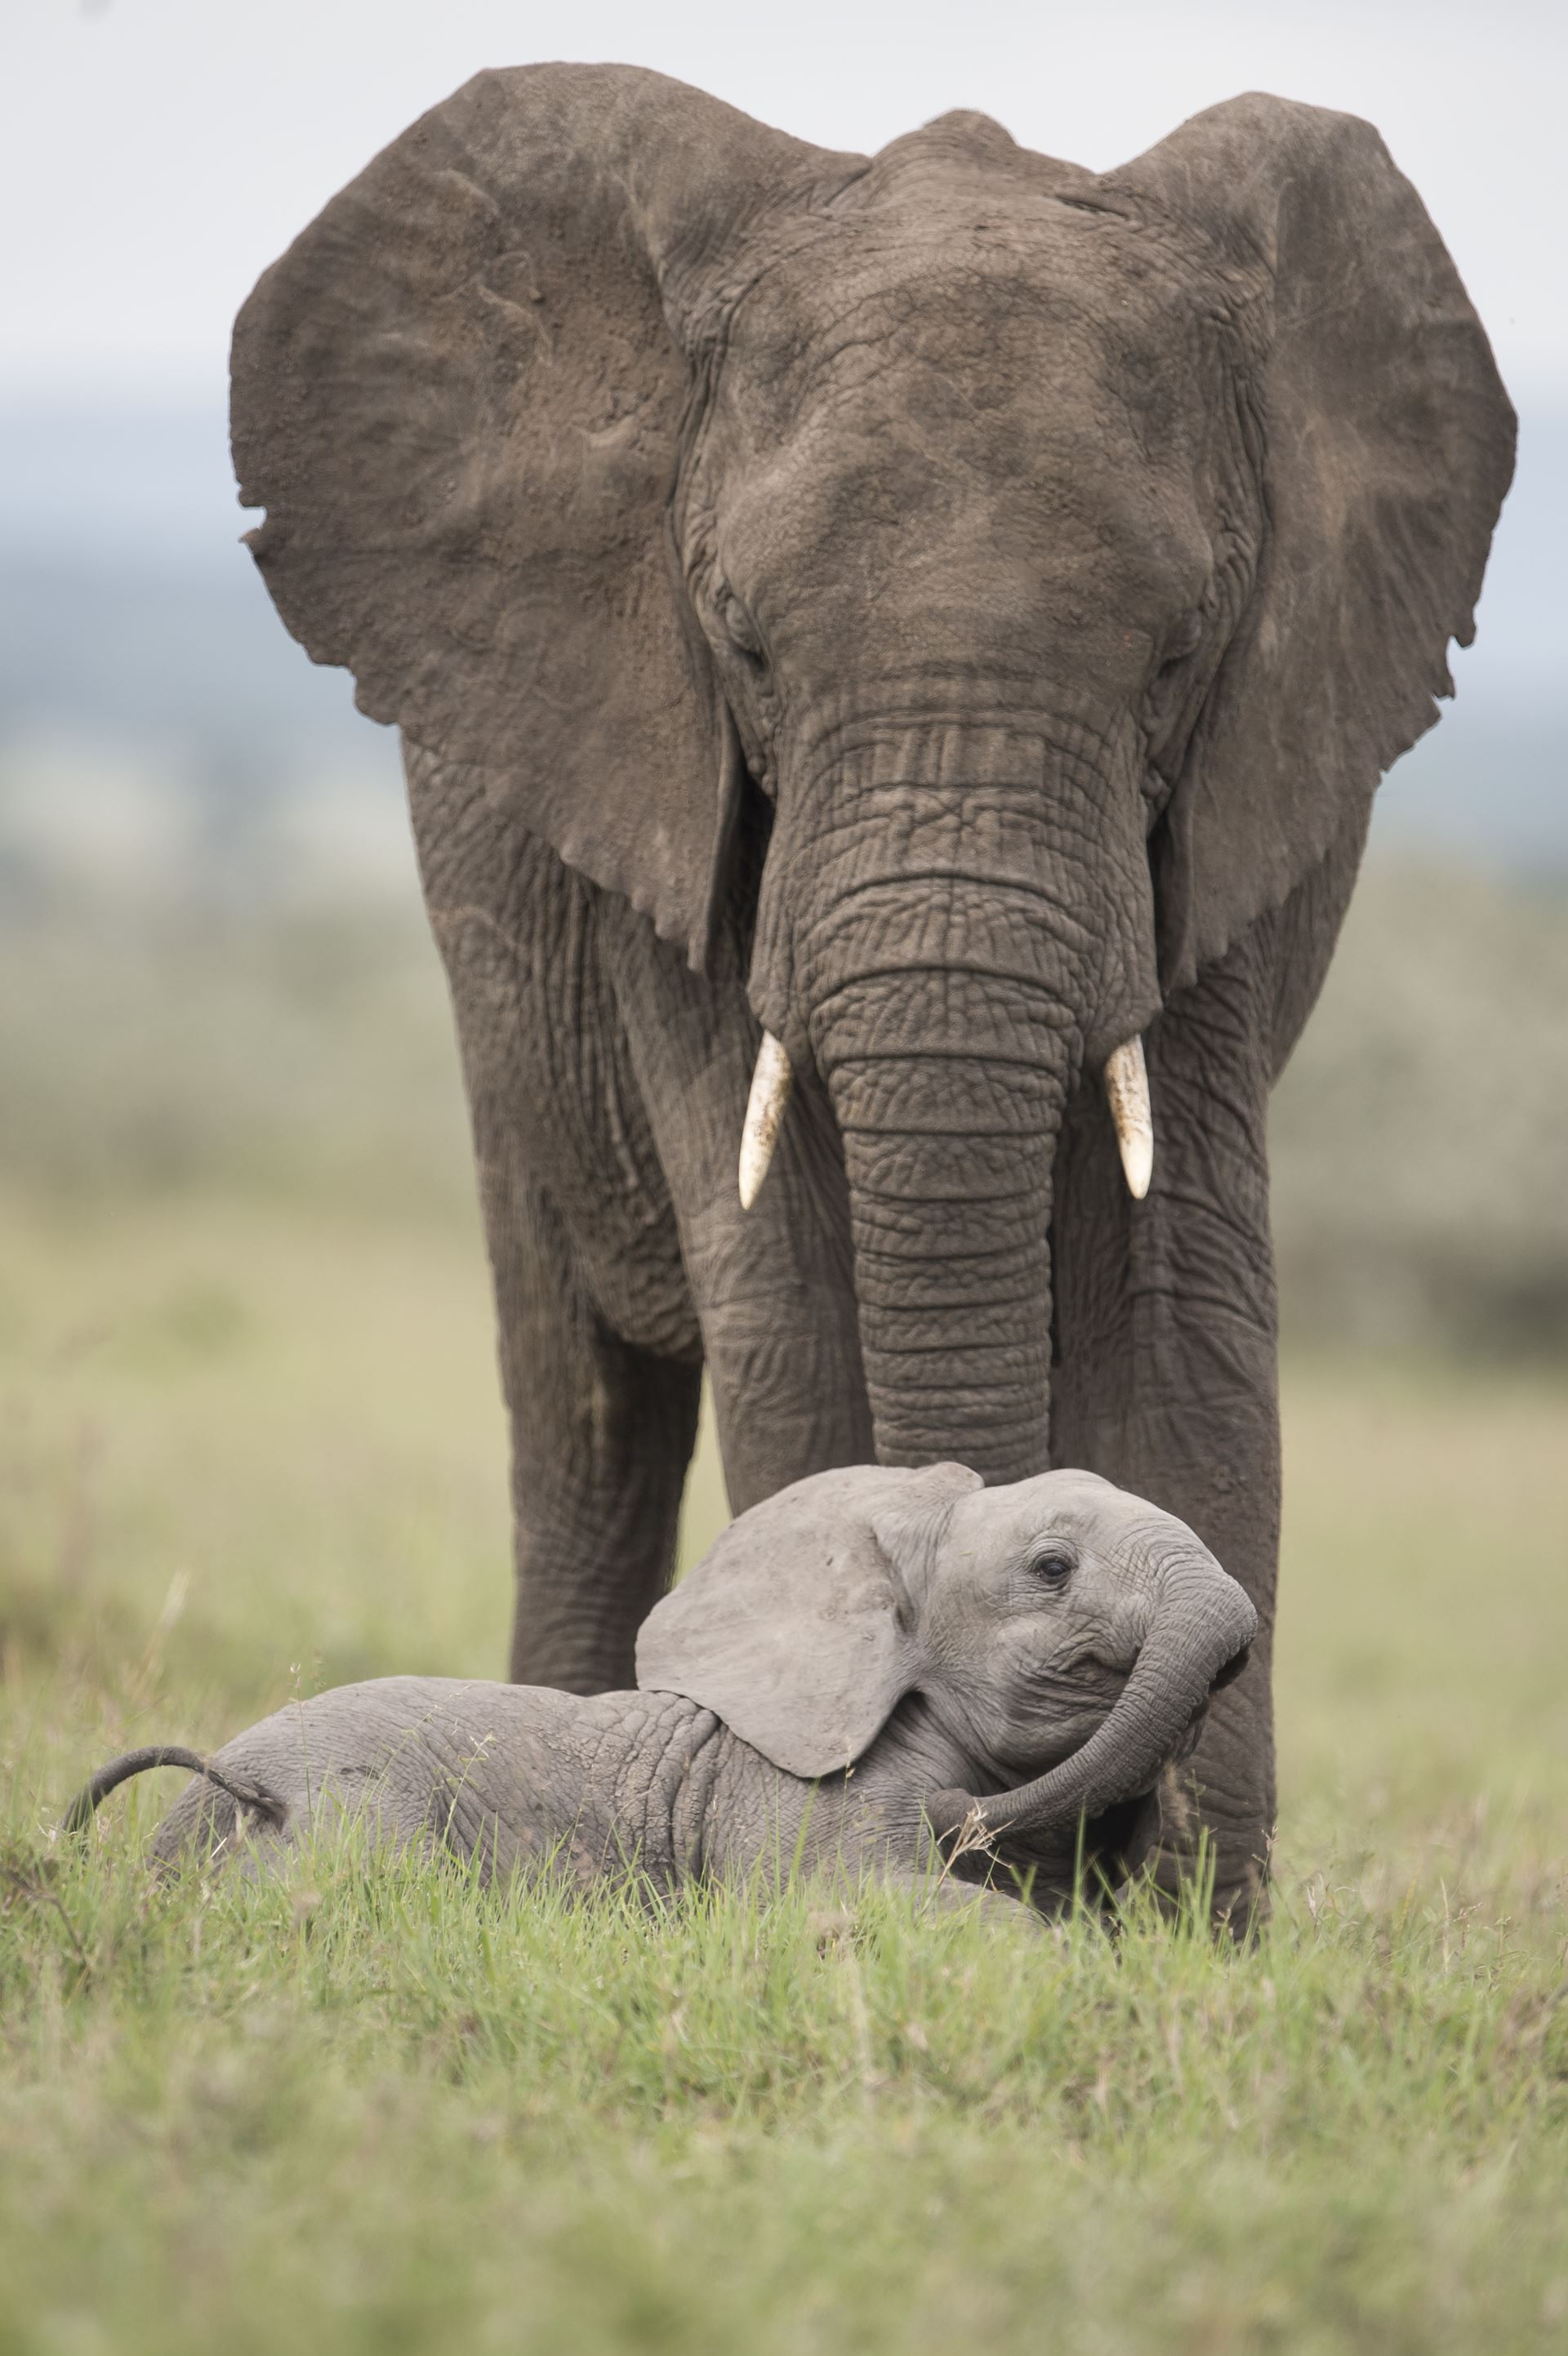 spotting elephants on the best family safari in Africa